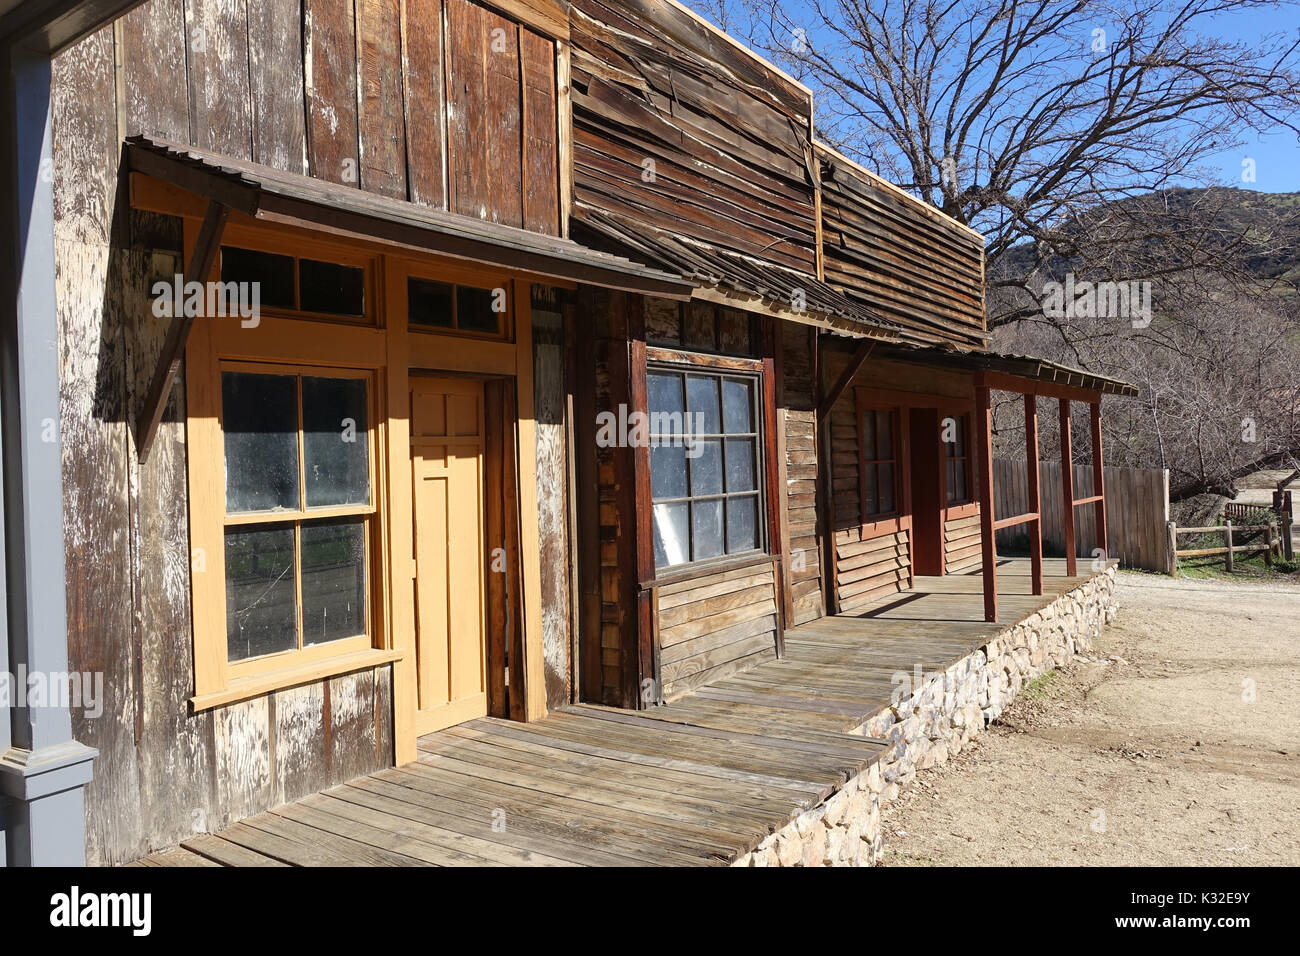 Paramount Ranch - This is the set for many a film and show especially those with a western theme. - Stock Image